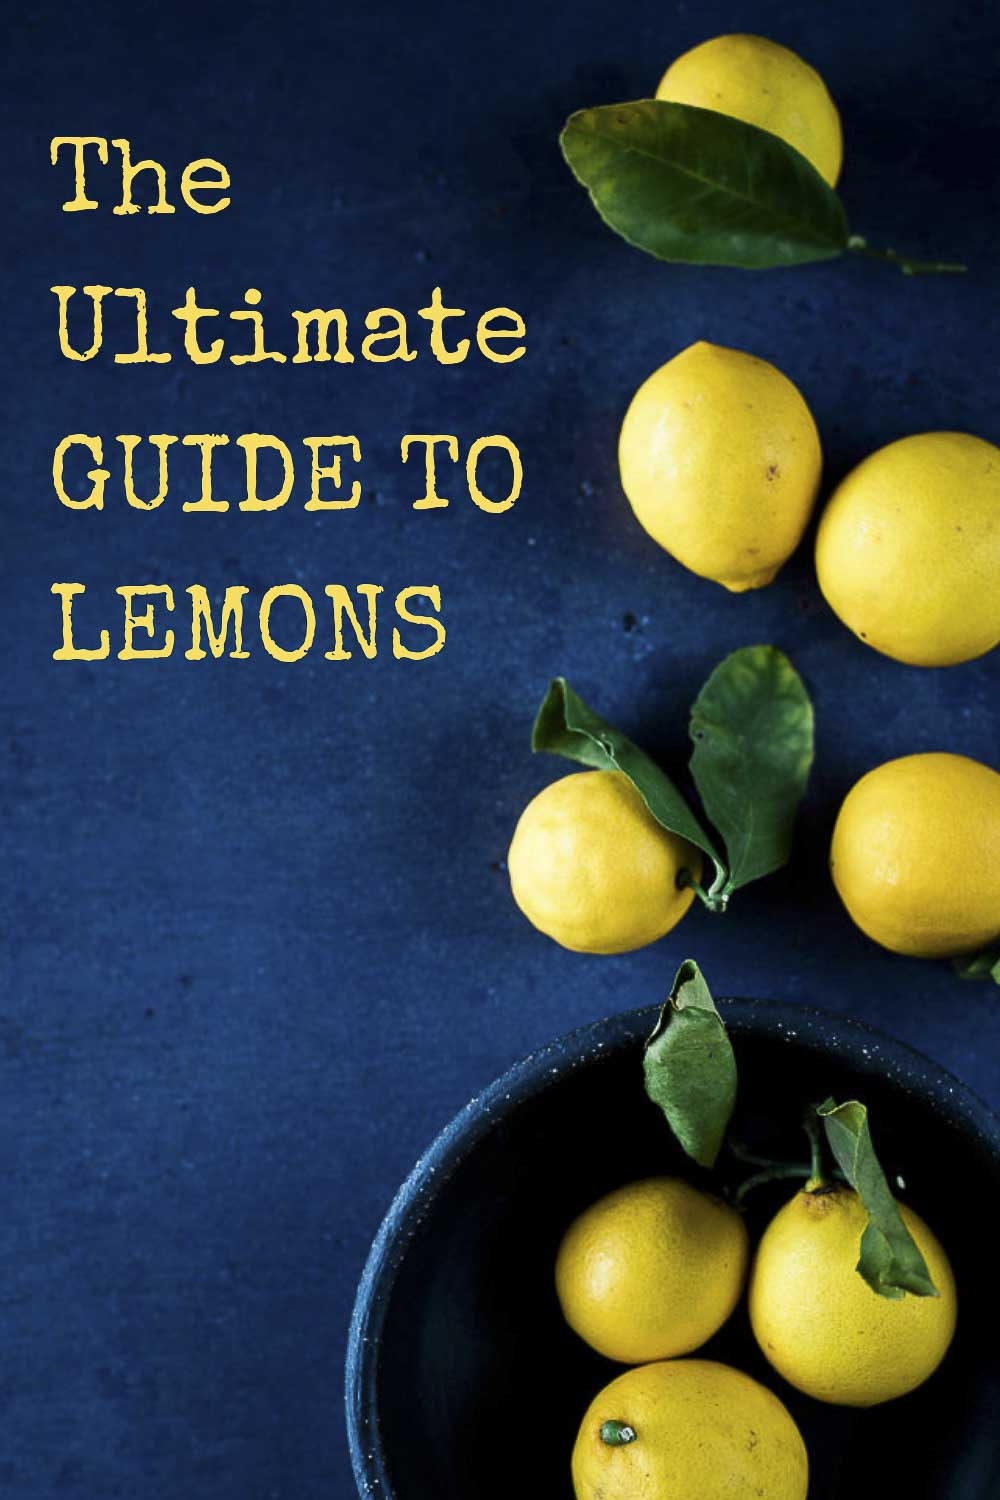 The ultimate guide to lemon uses in cooking. Learn about the different types of lemons, how you can preserve them, and great ways to use them in cooking! Lemon can be used in both sweet and savory dishes, and adds a special tartness and flavor enhancement to so many different recipes. Take full advantage of lemon season - read this in depth guide to cooking with lemons! #wenthere8this #lemonseason #preservedlemon